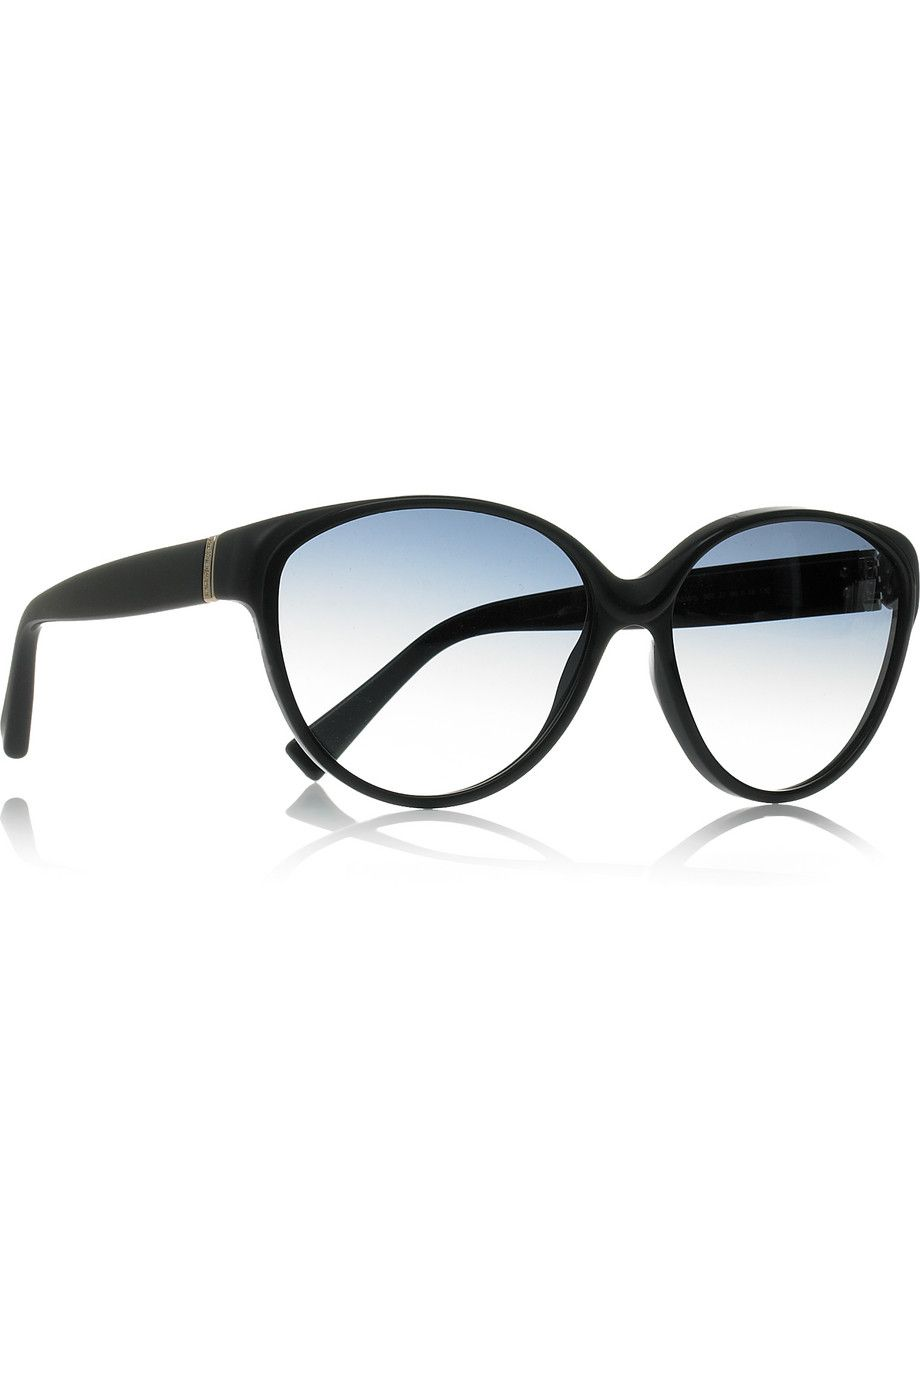 Yves Saint Laurent - Cat eye acetate sunglasses